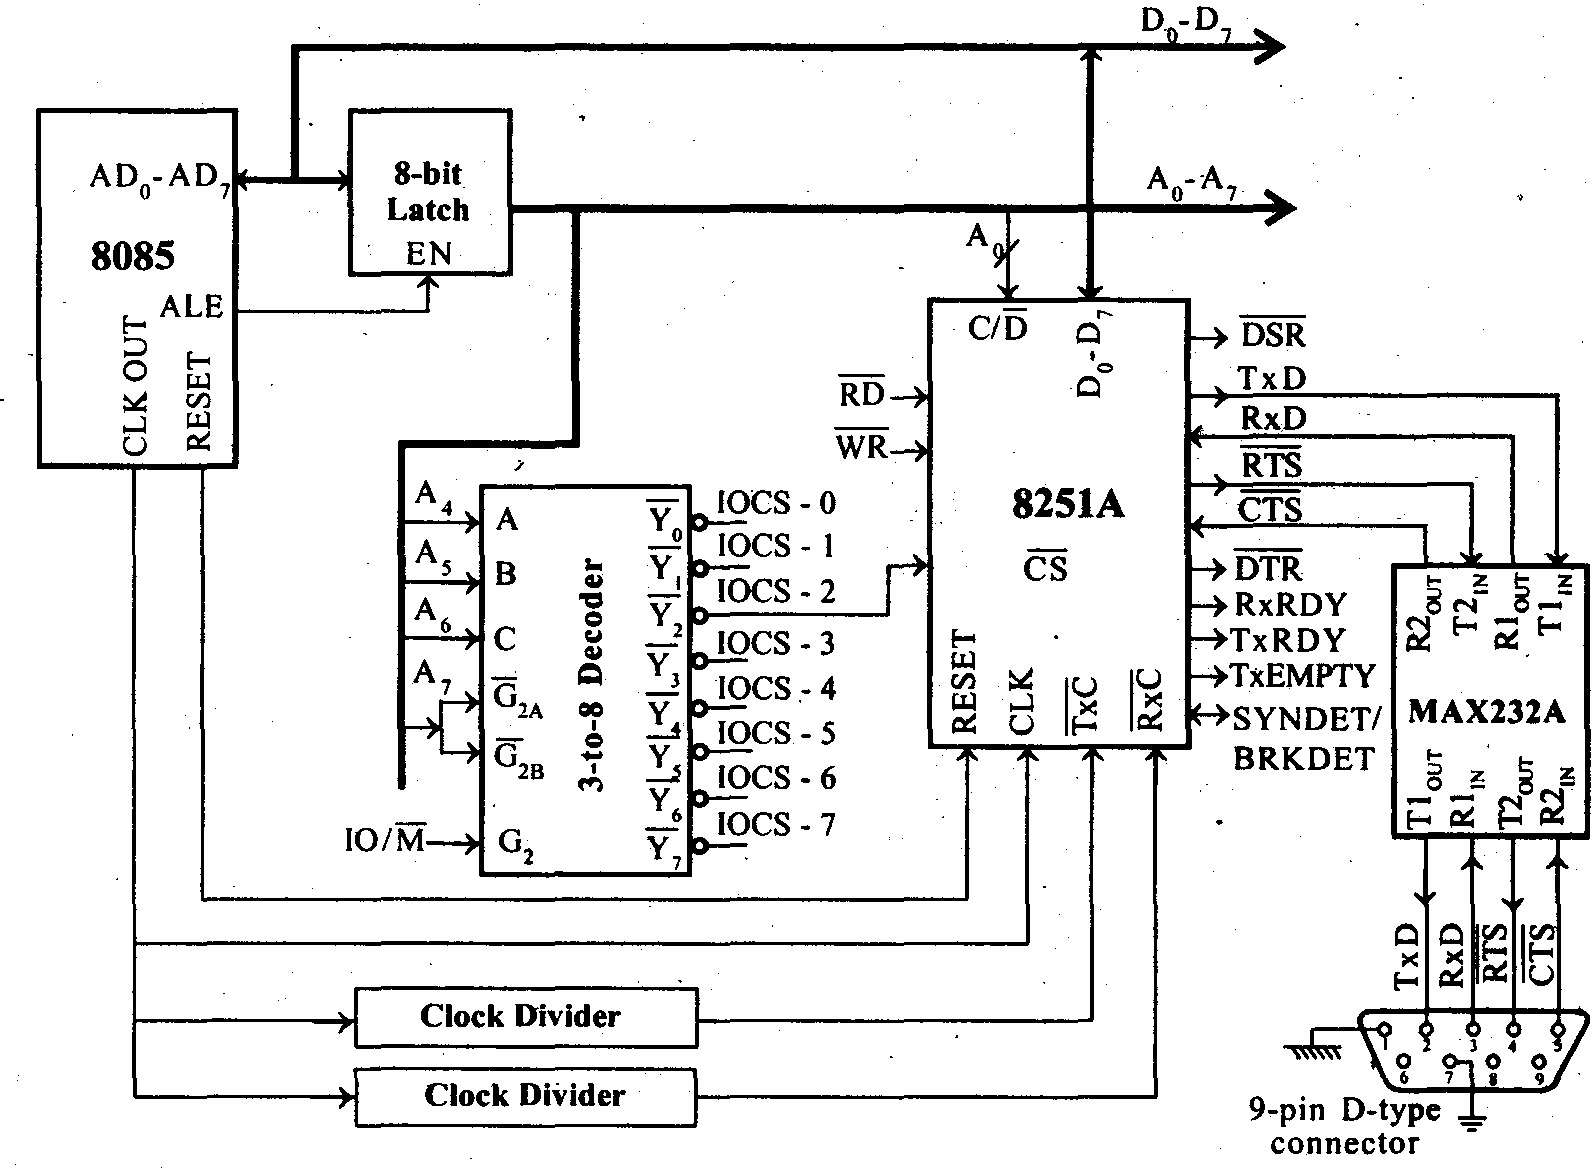 rs232 circuit diagram for pinterest